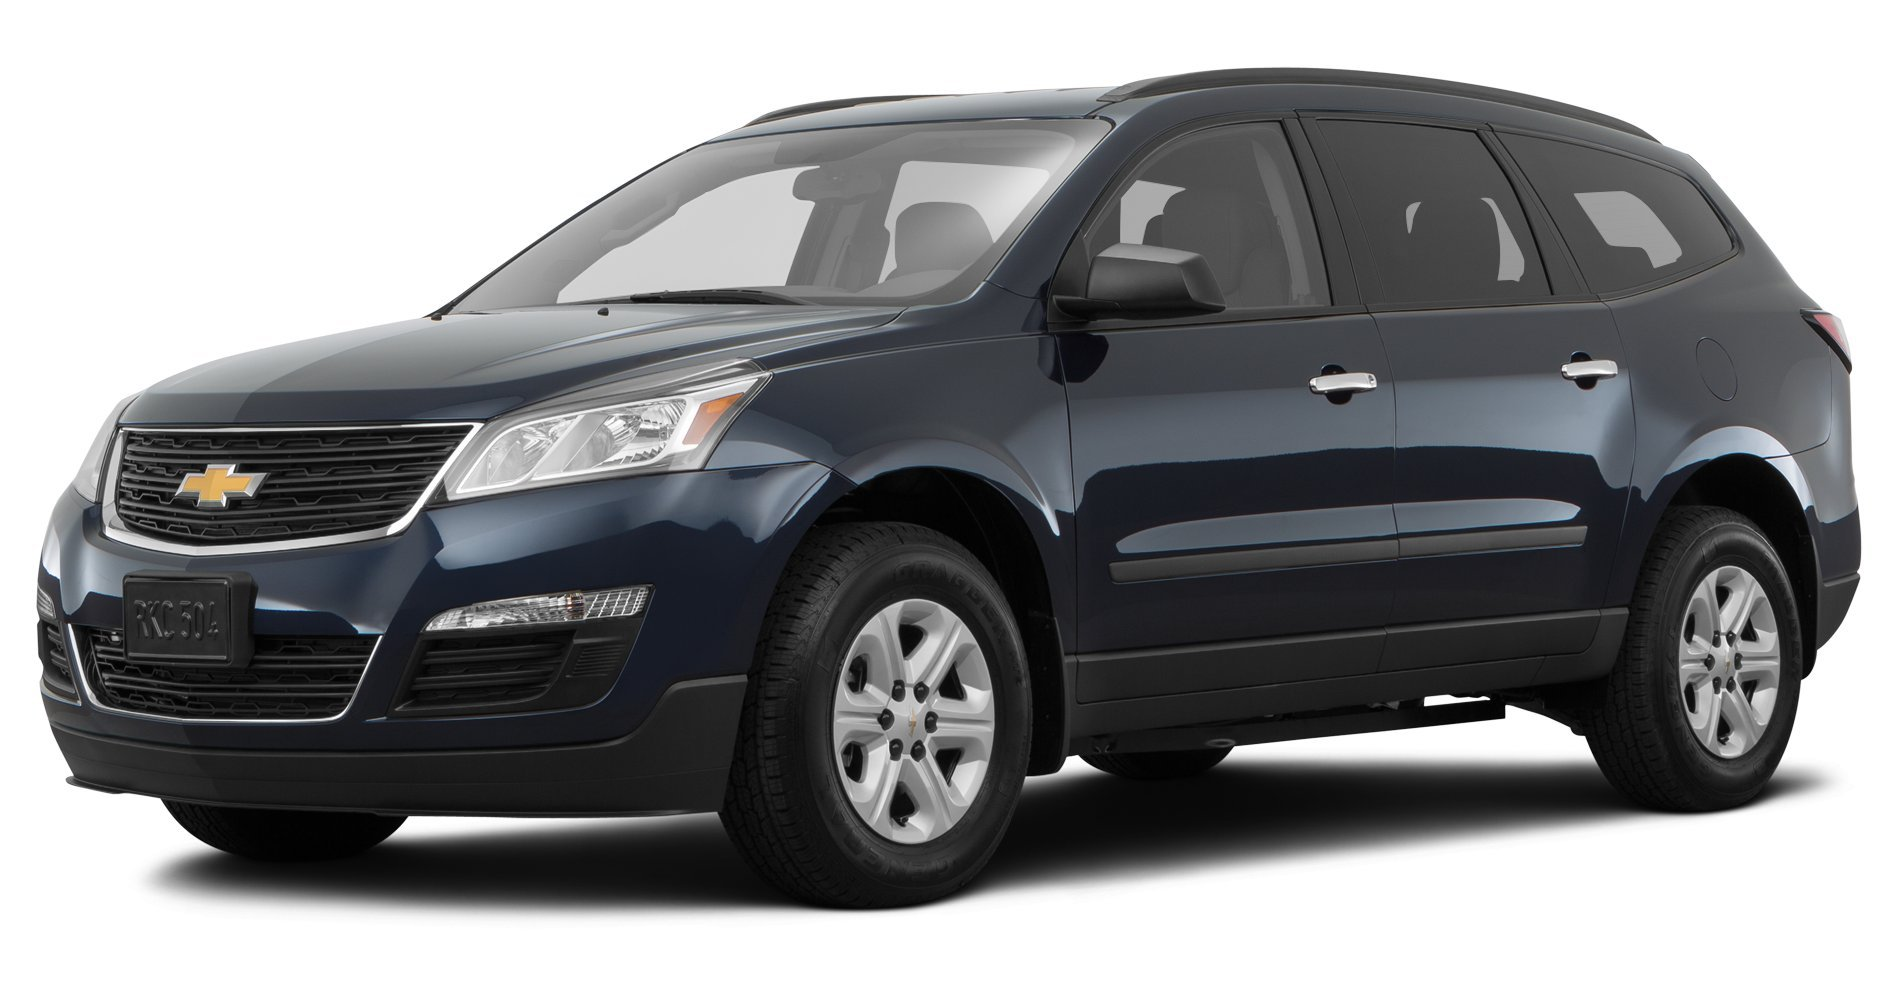 2016 chevrolet traverse reviews images and specs vehicles. Black Bedroom Furniture Sets. Home Design Ideas